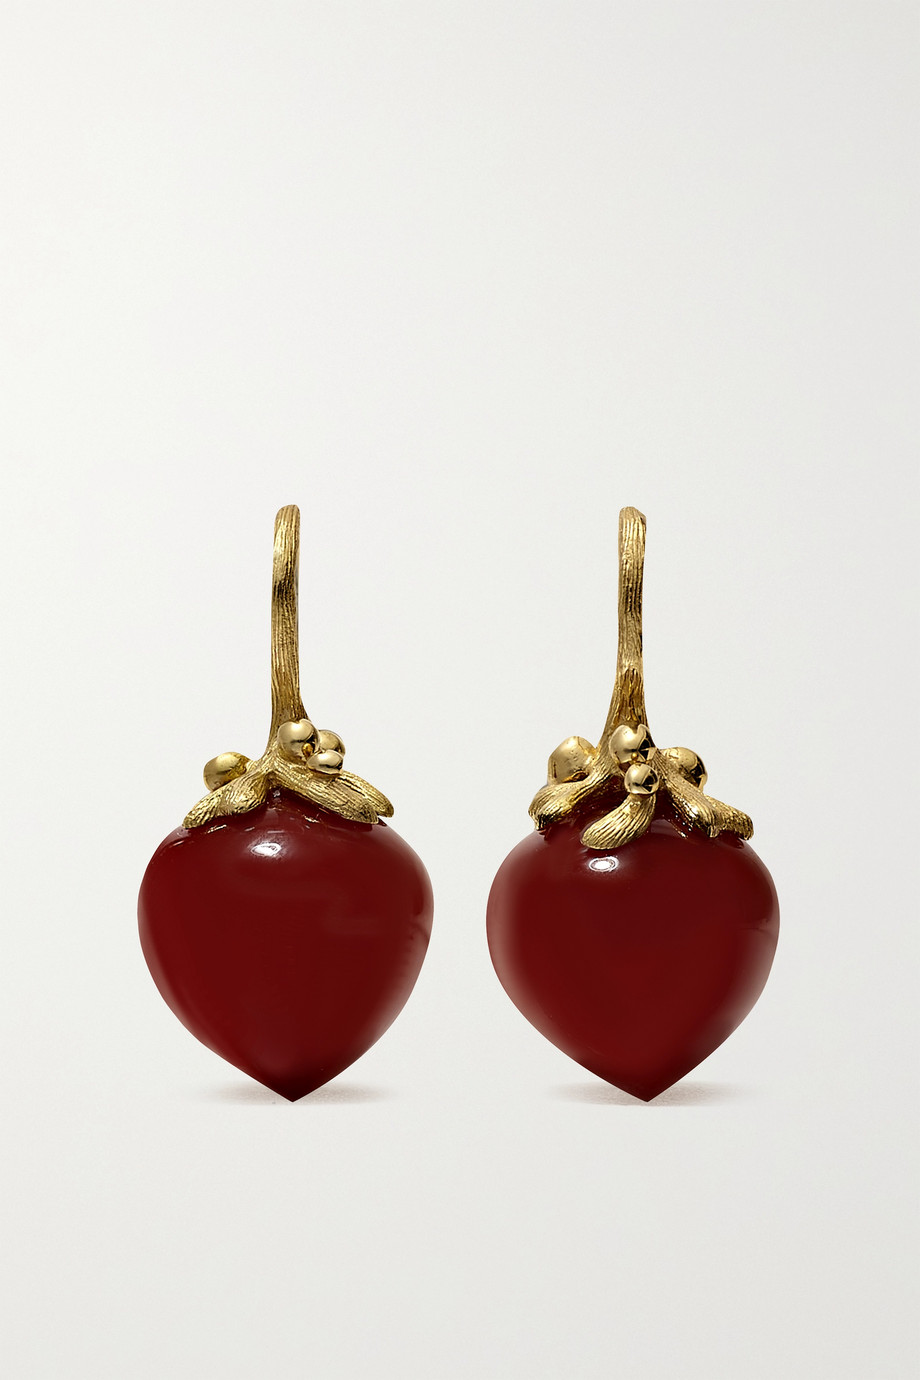 OLE LYNGGAARD COPENHAGEN Dew Drops Large 18-karat gold carnelian earrings